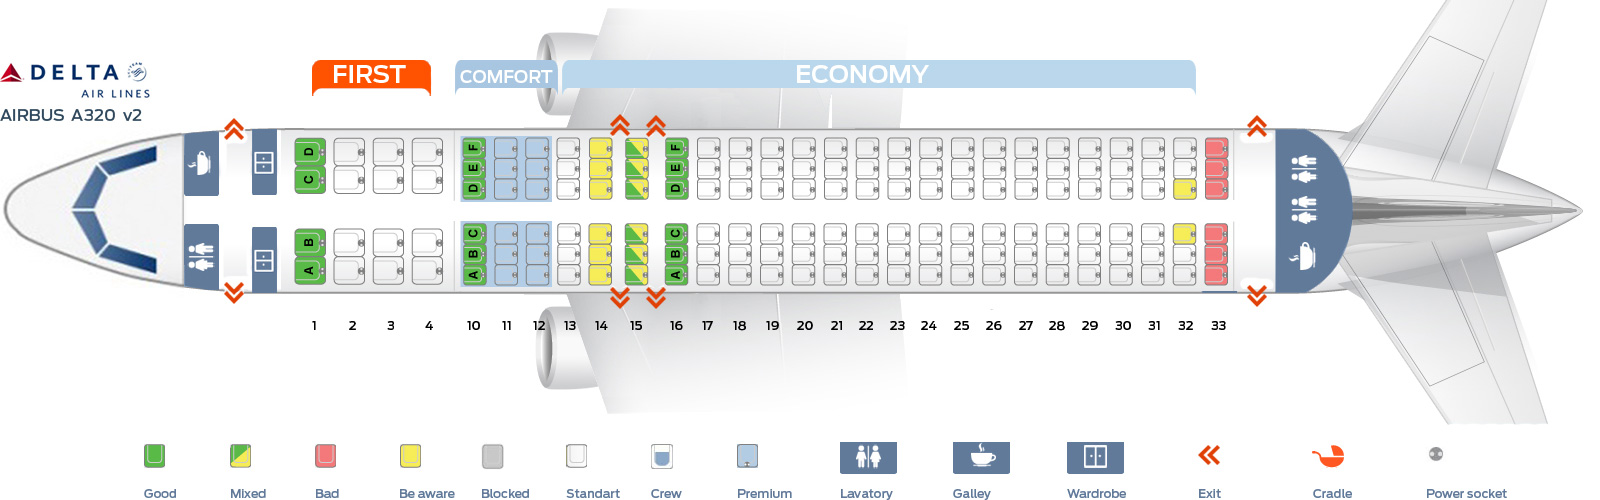 Seat Map Airbus A320 200 Delta Airlines Best Seats In Plane